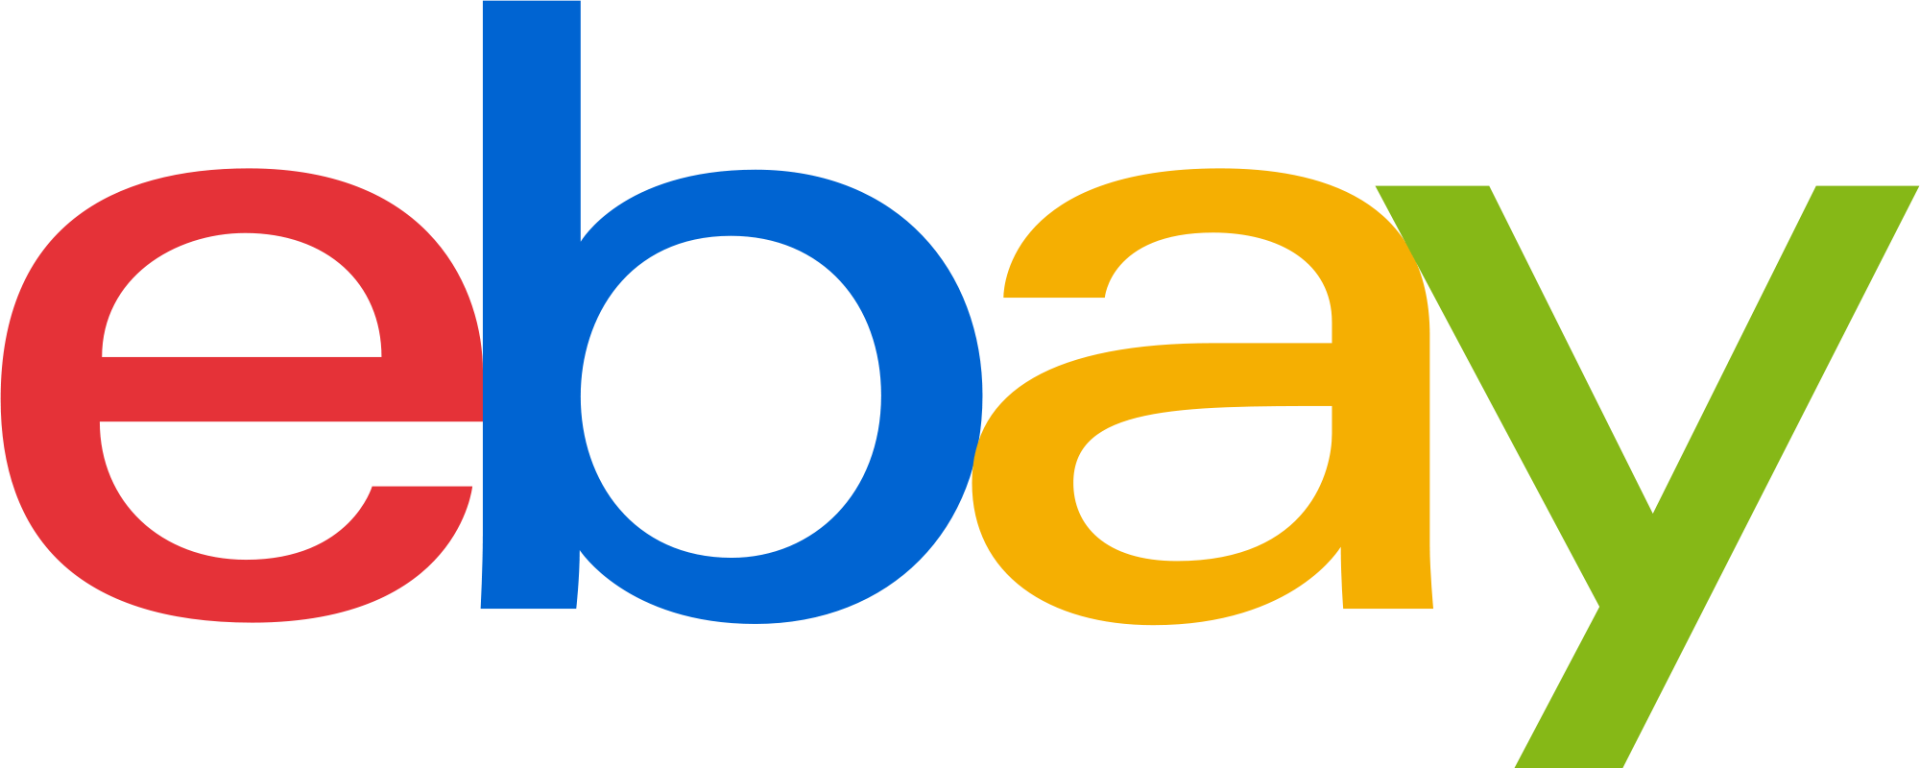 EBay Inc EBAY Inches Closer To Accepting Bitcoin As Payment Option